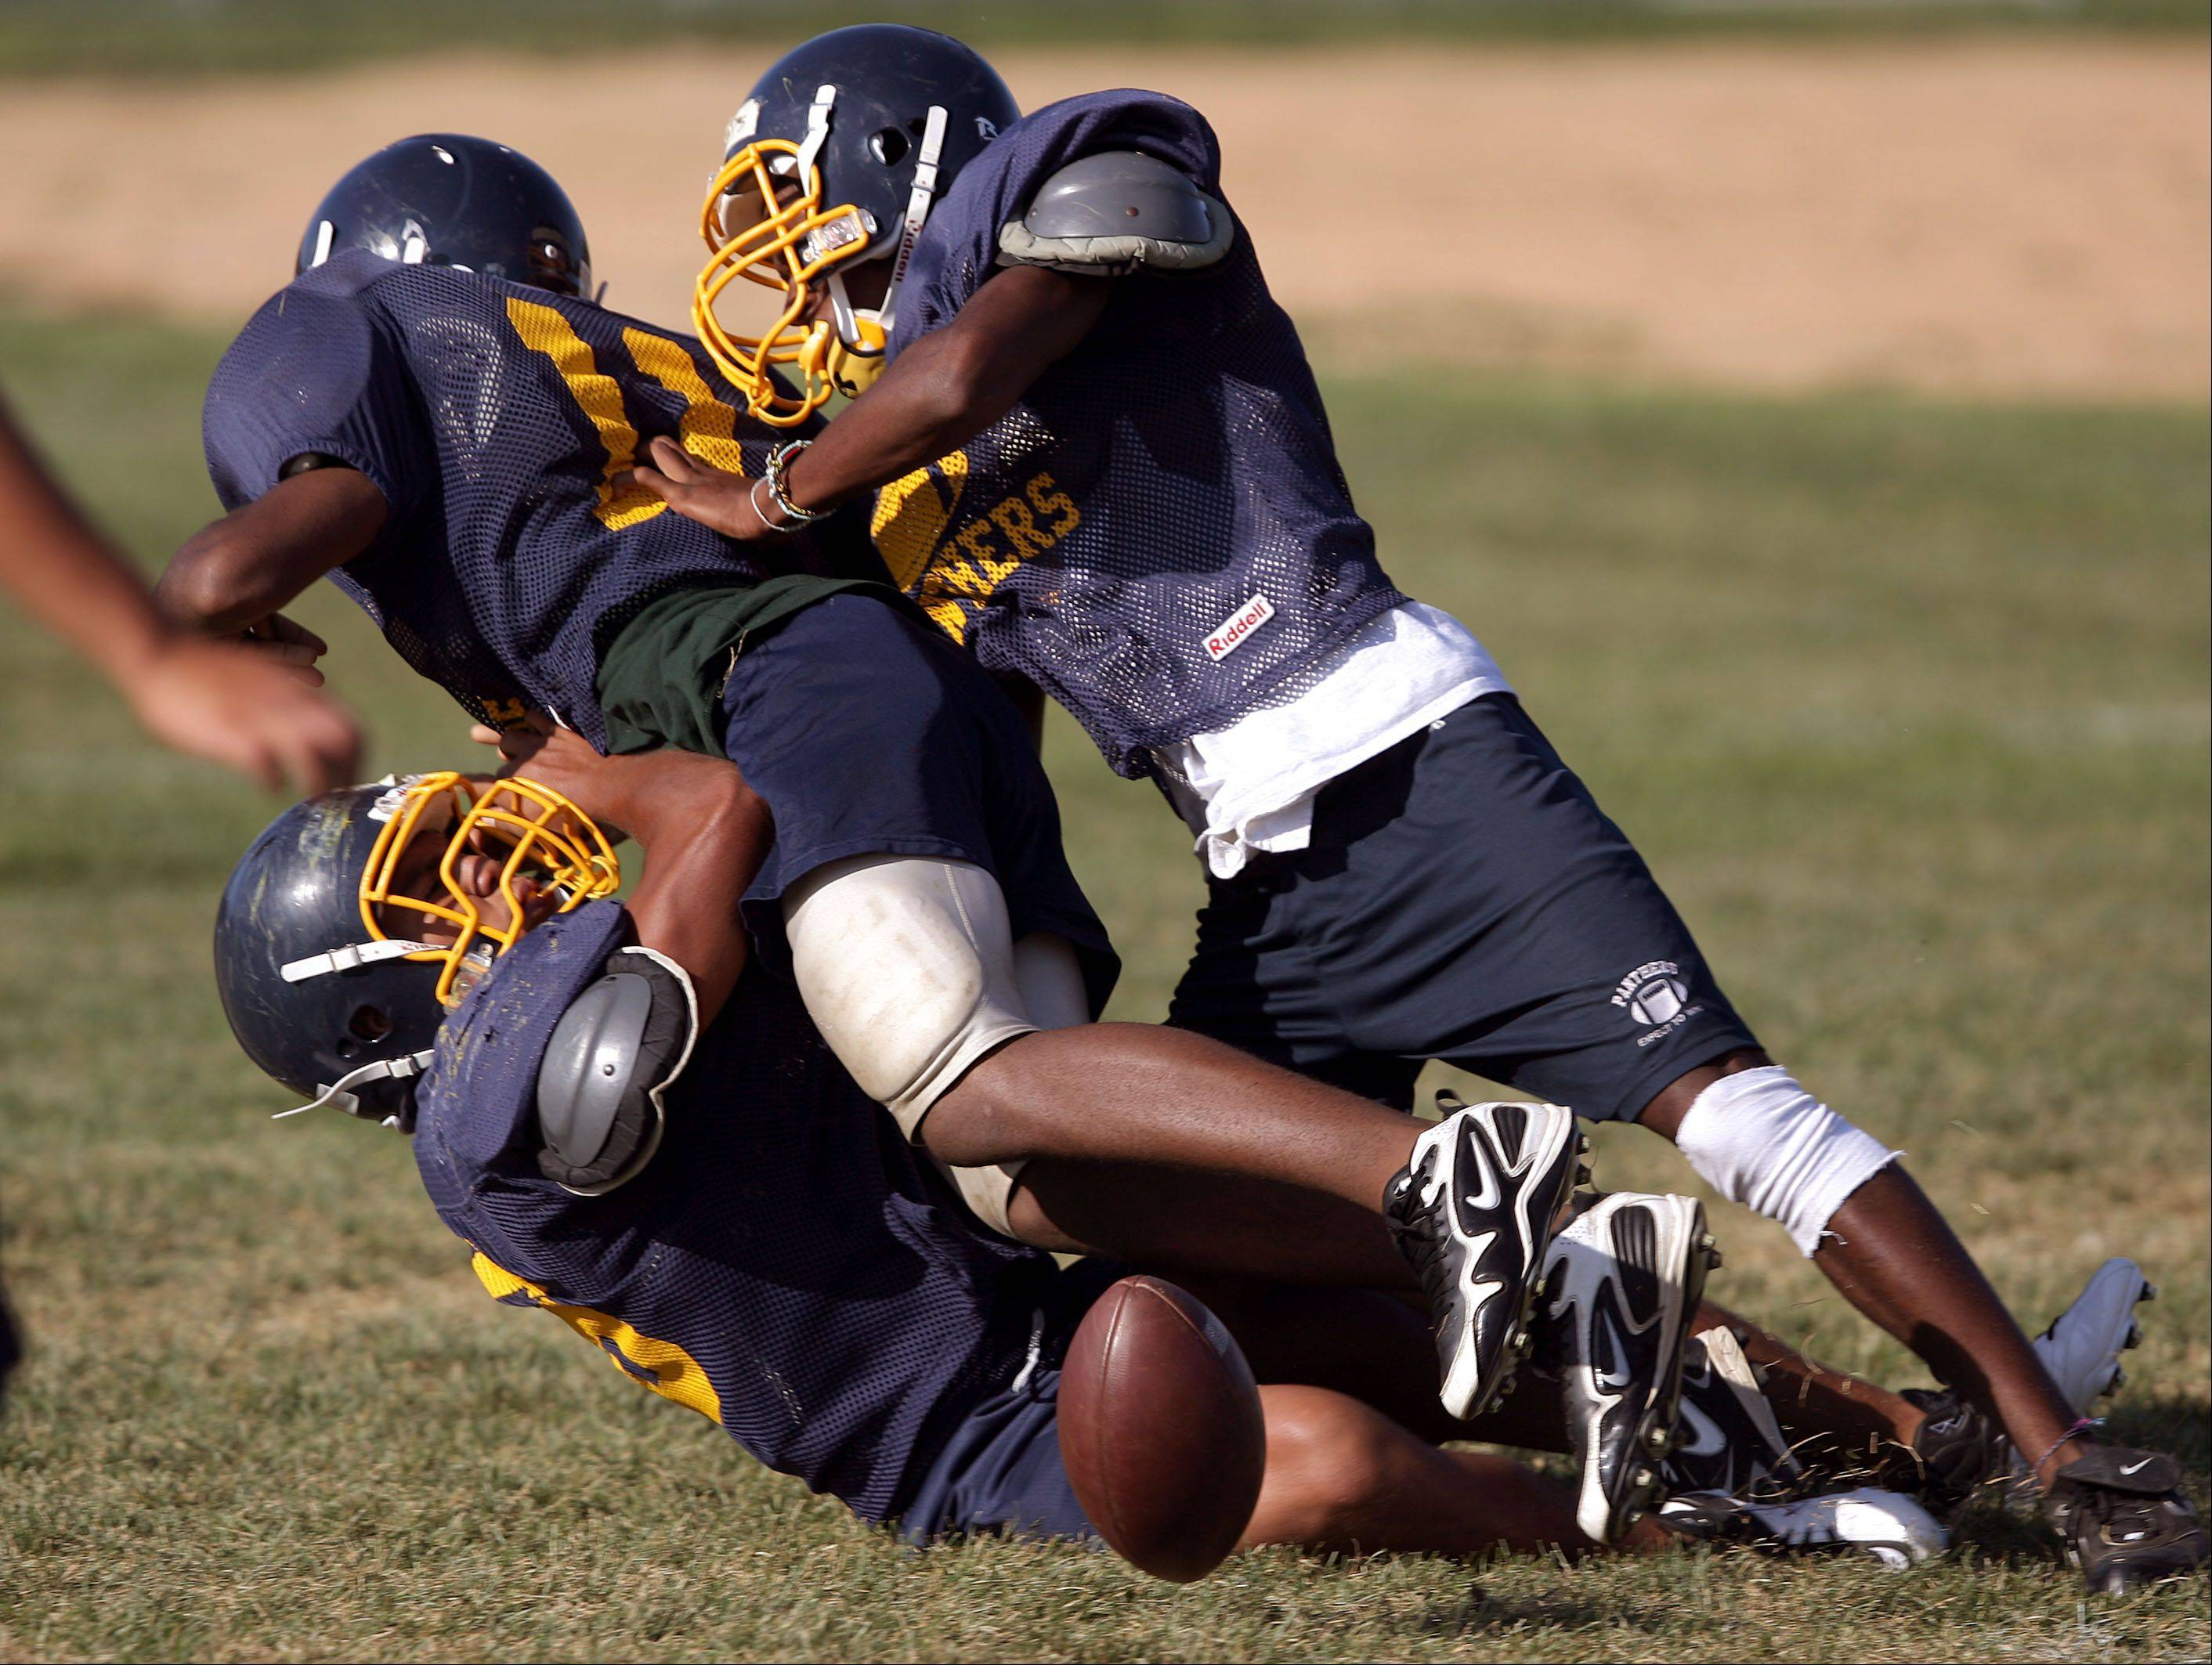 Should tackling be limited in youth, high school football practice?